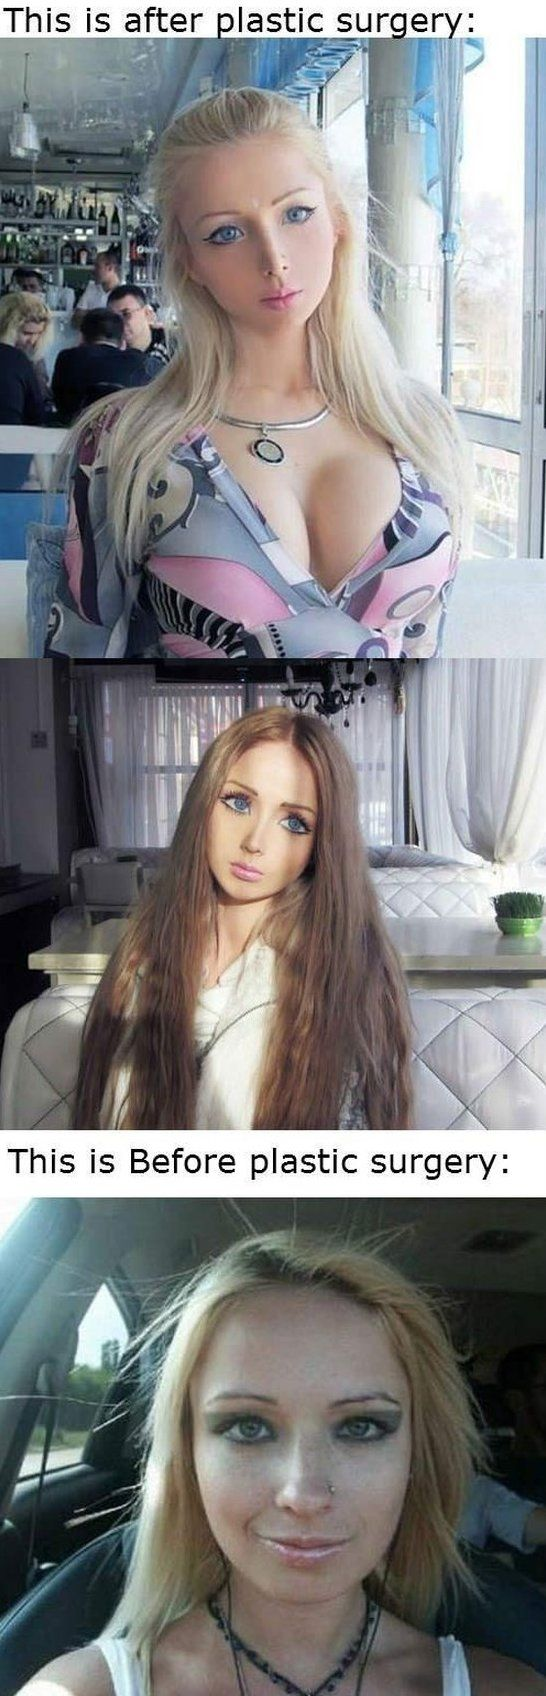 Real life barbie - www.meme-lol.com